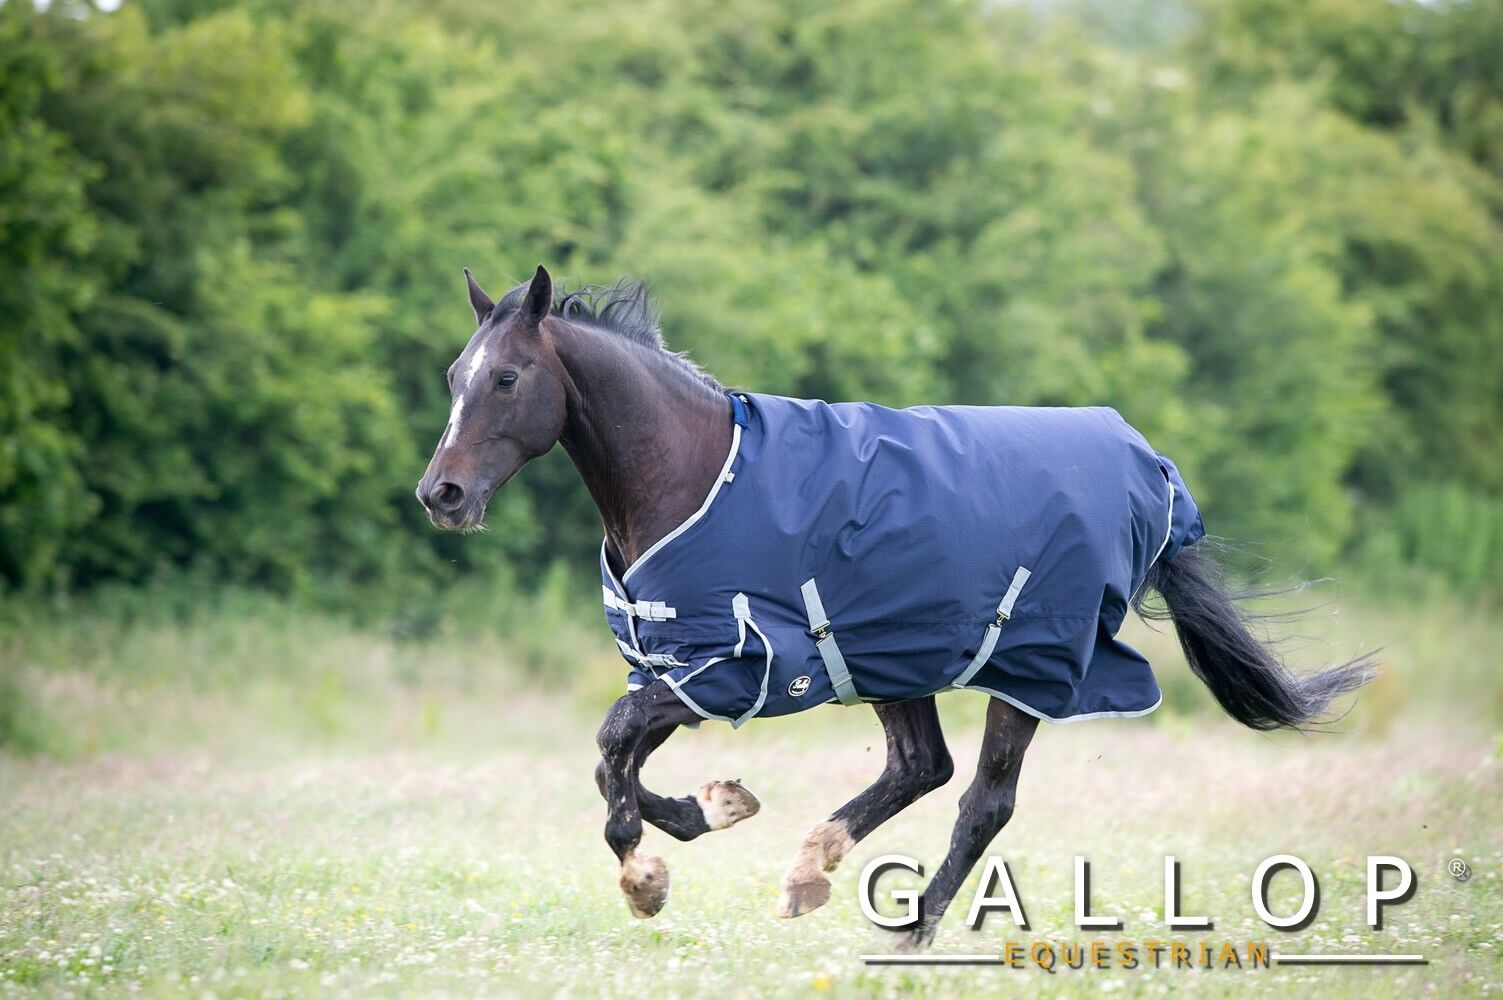 Gallop Trojan 350g Heavyweight Standard Turnout Rug - all sizes available